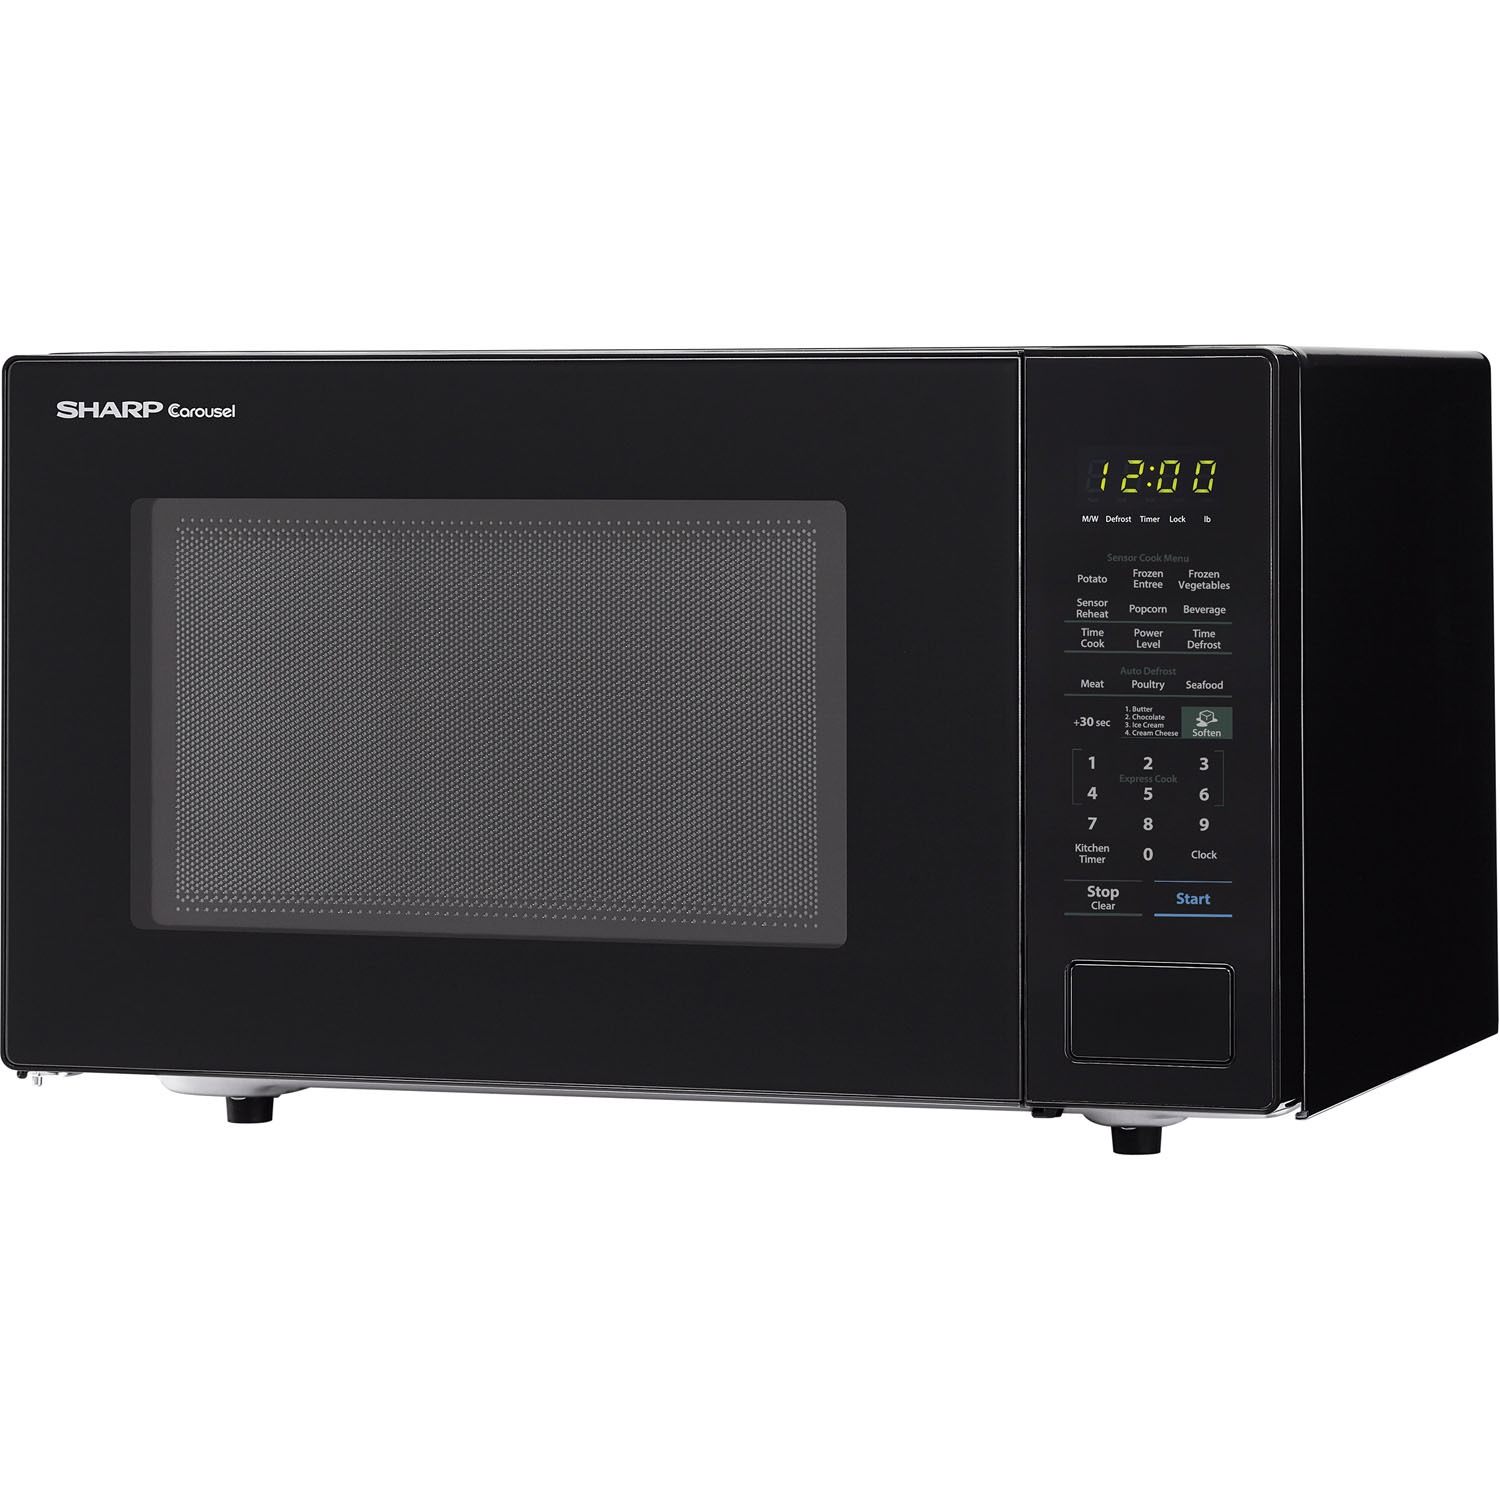 Sharp Carousel 1 4 Cu Ft 1000w Countertop Microwave Oven